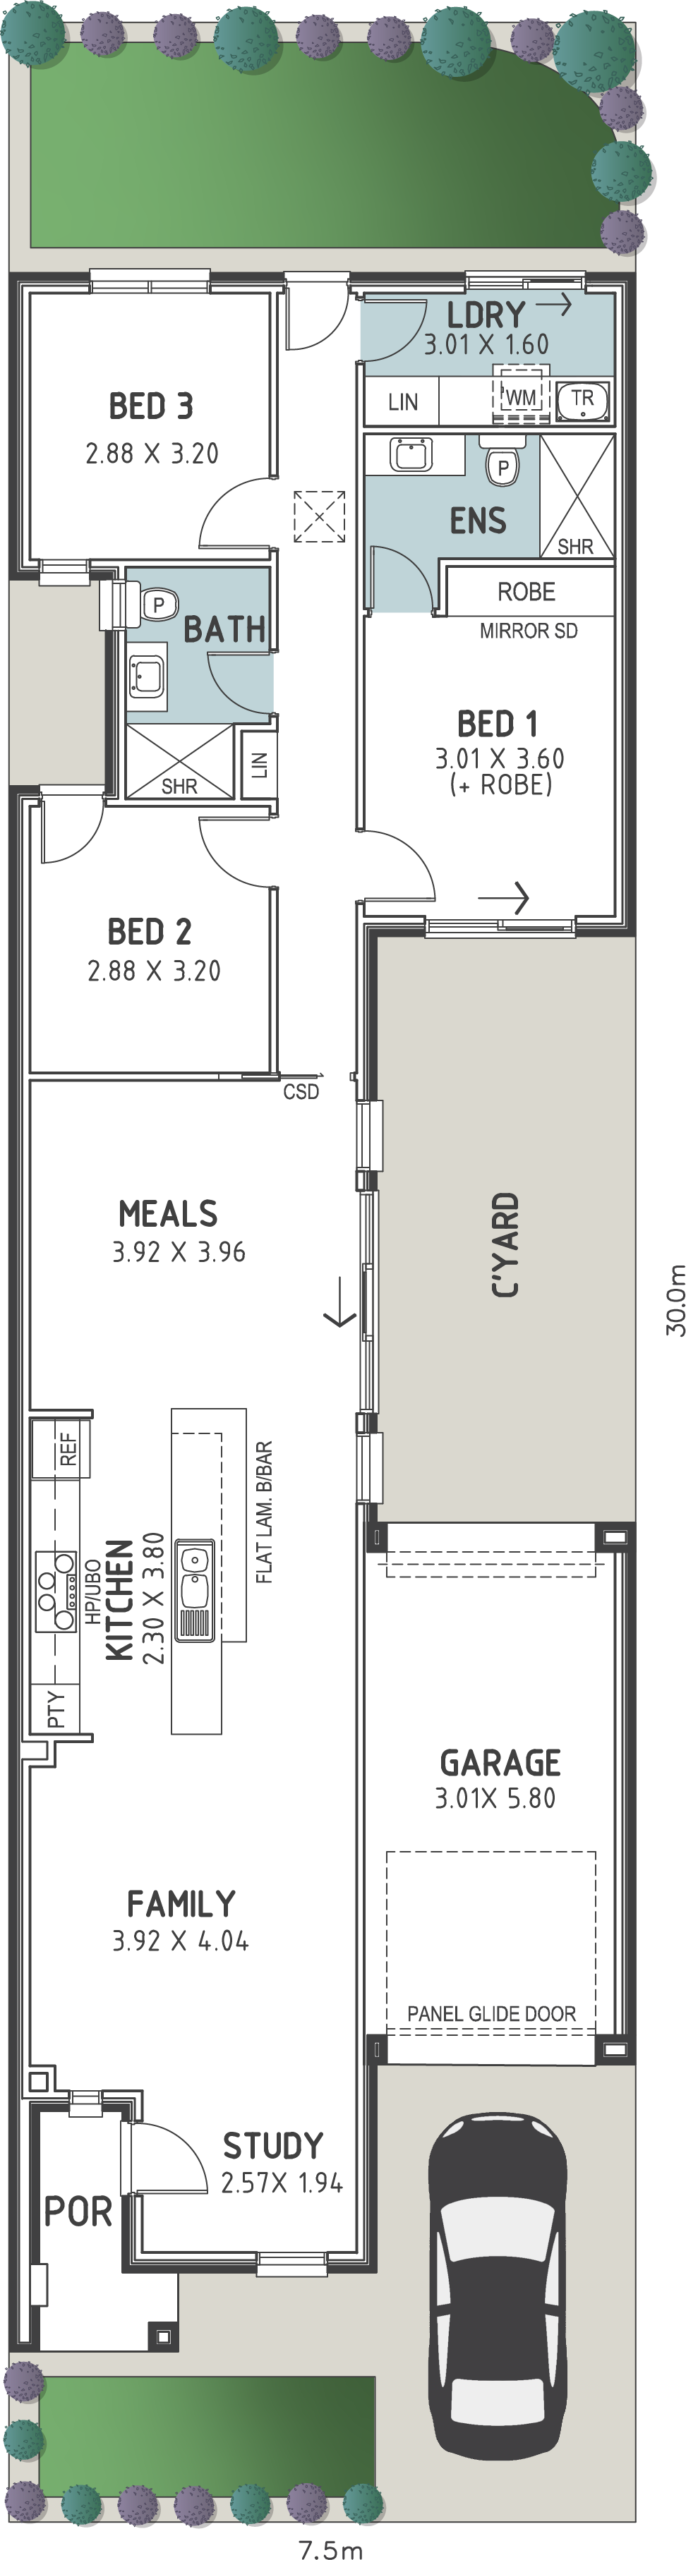 Brand new home in Enfield only $5k DEPOSIT